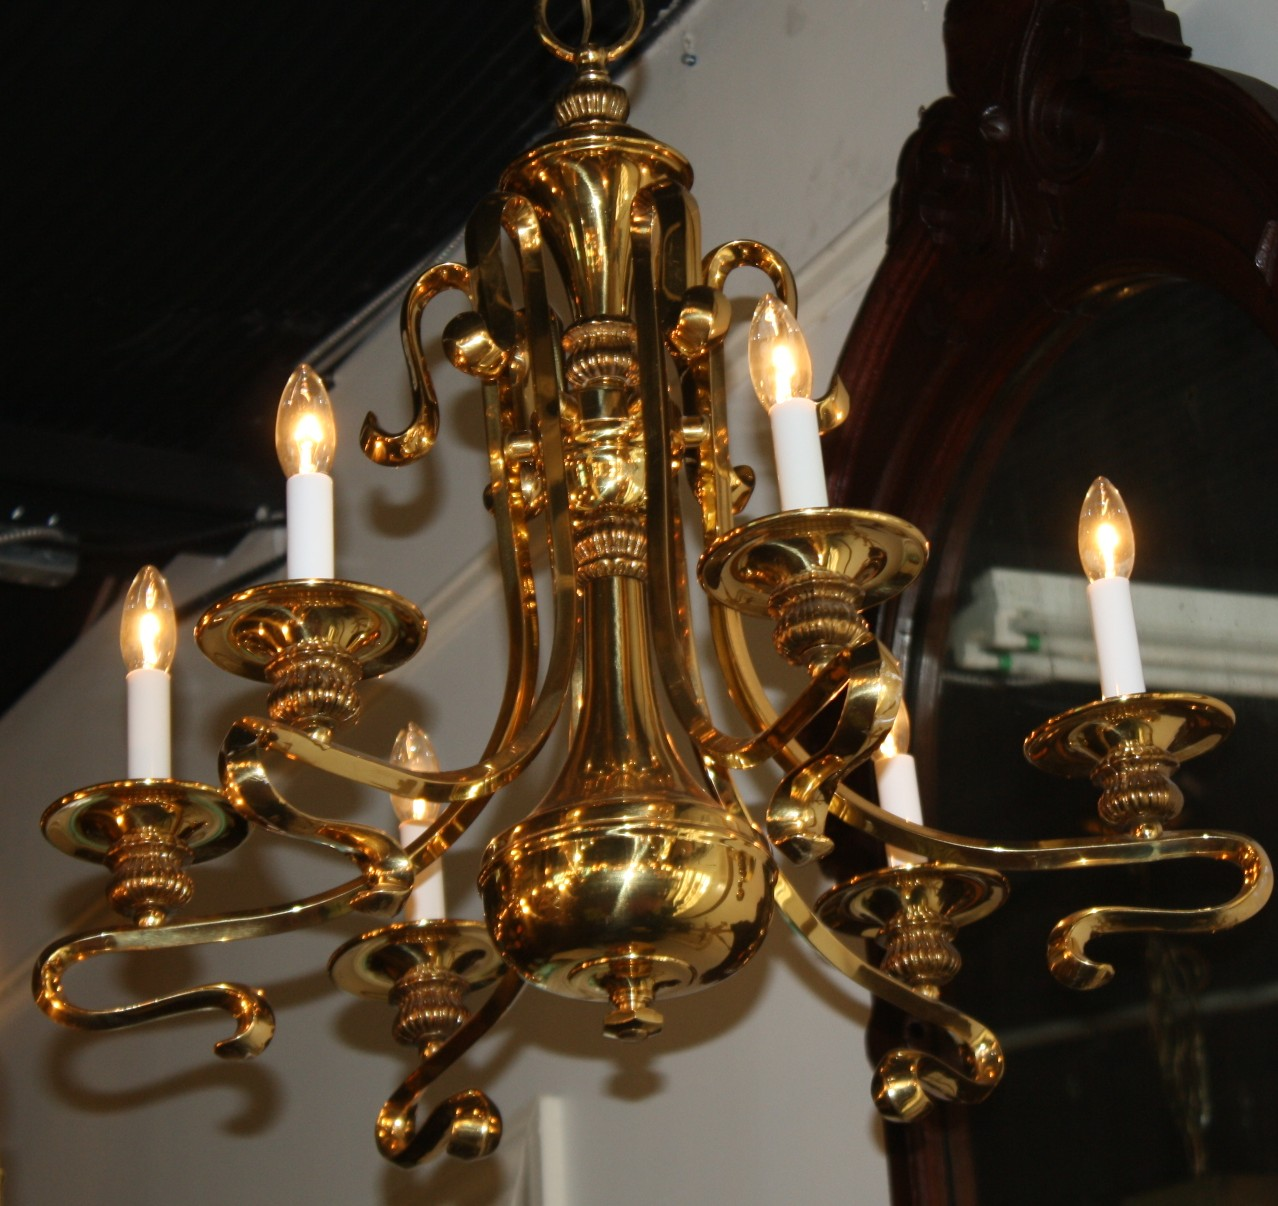 Swirl arm six light brass chandelier for sale classifieds - Chandeliers on sale online ...